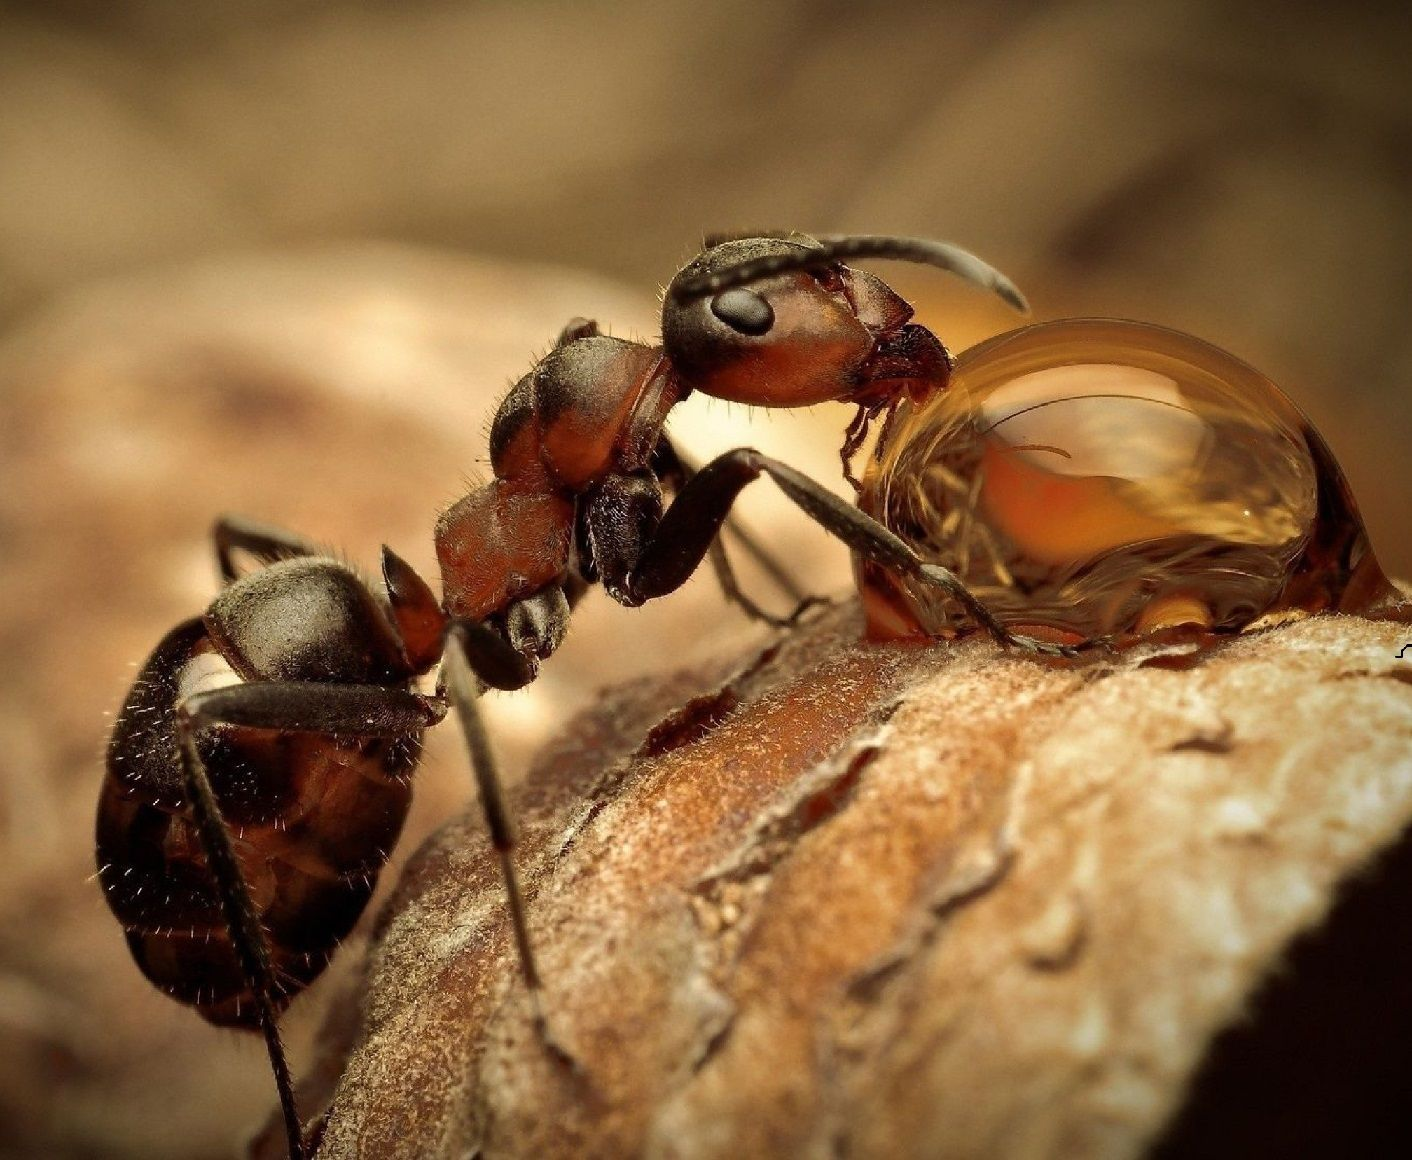 ant drinking water close up animals pinterest drinking water